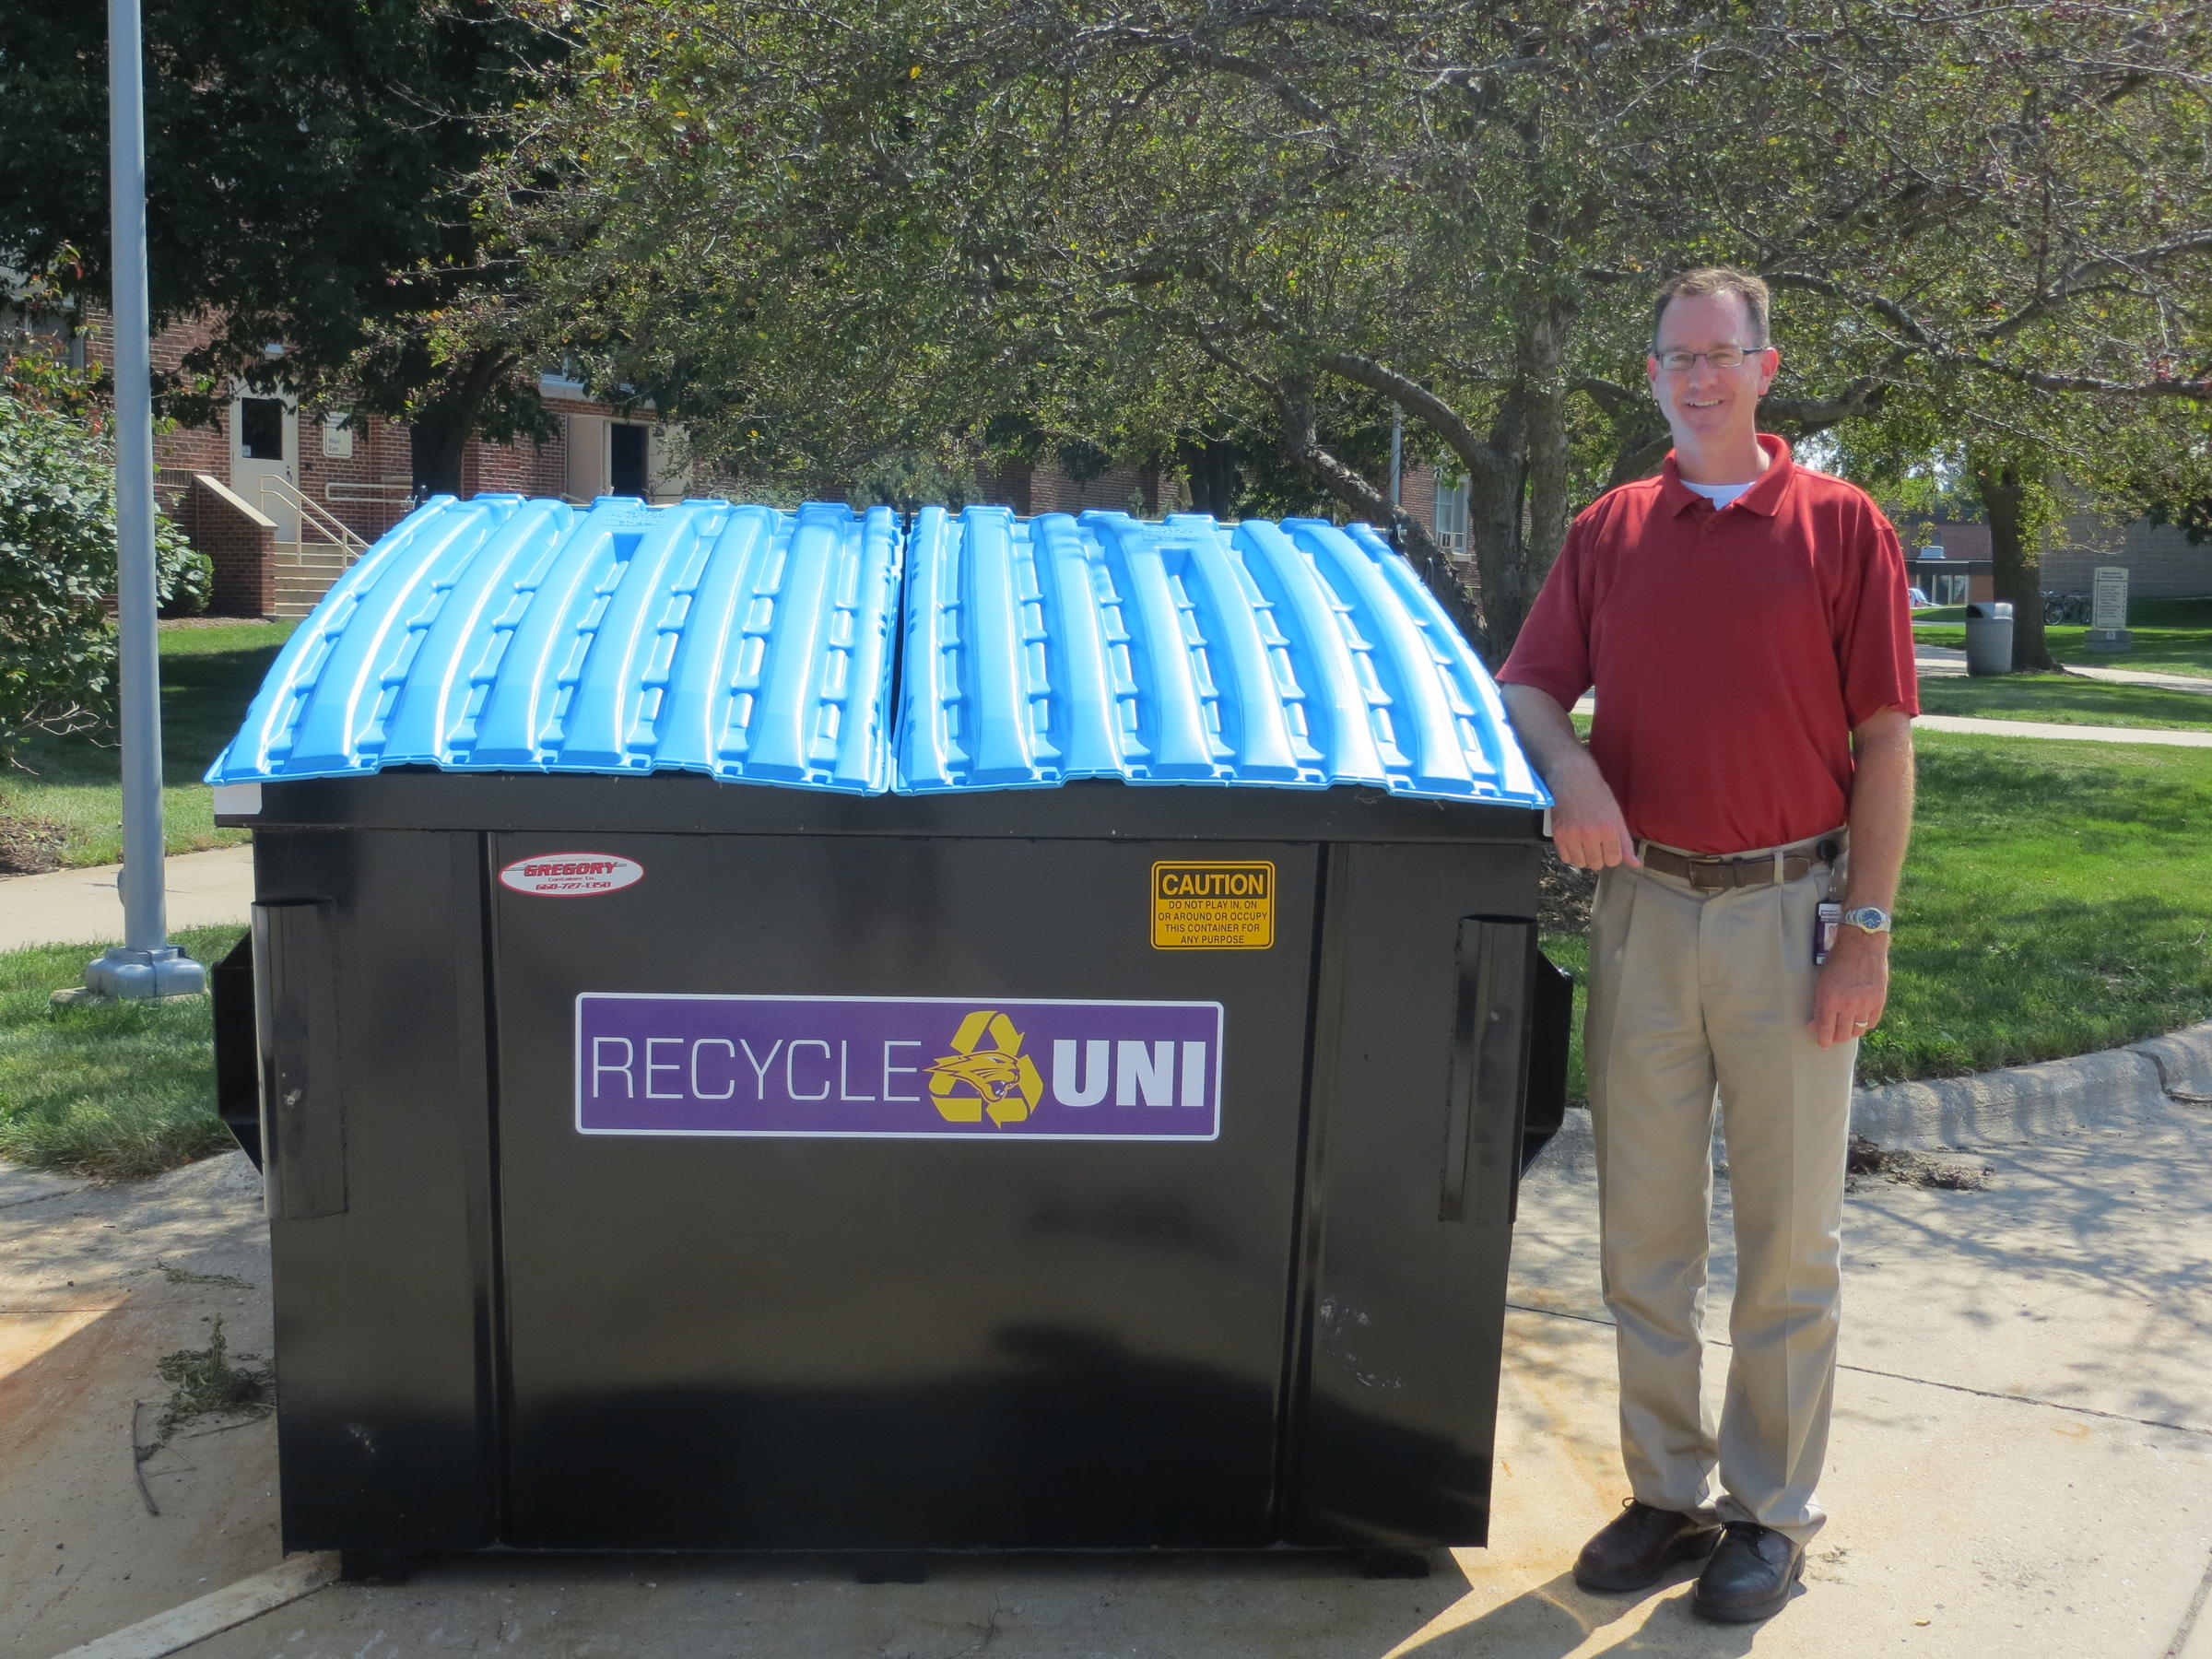 uni physical plant director mike zwanziger stands next to one the newly labled recycling dumpsters